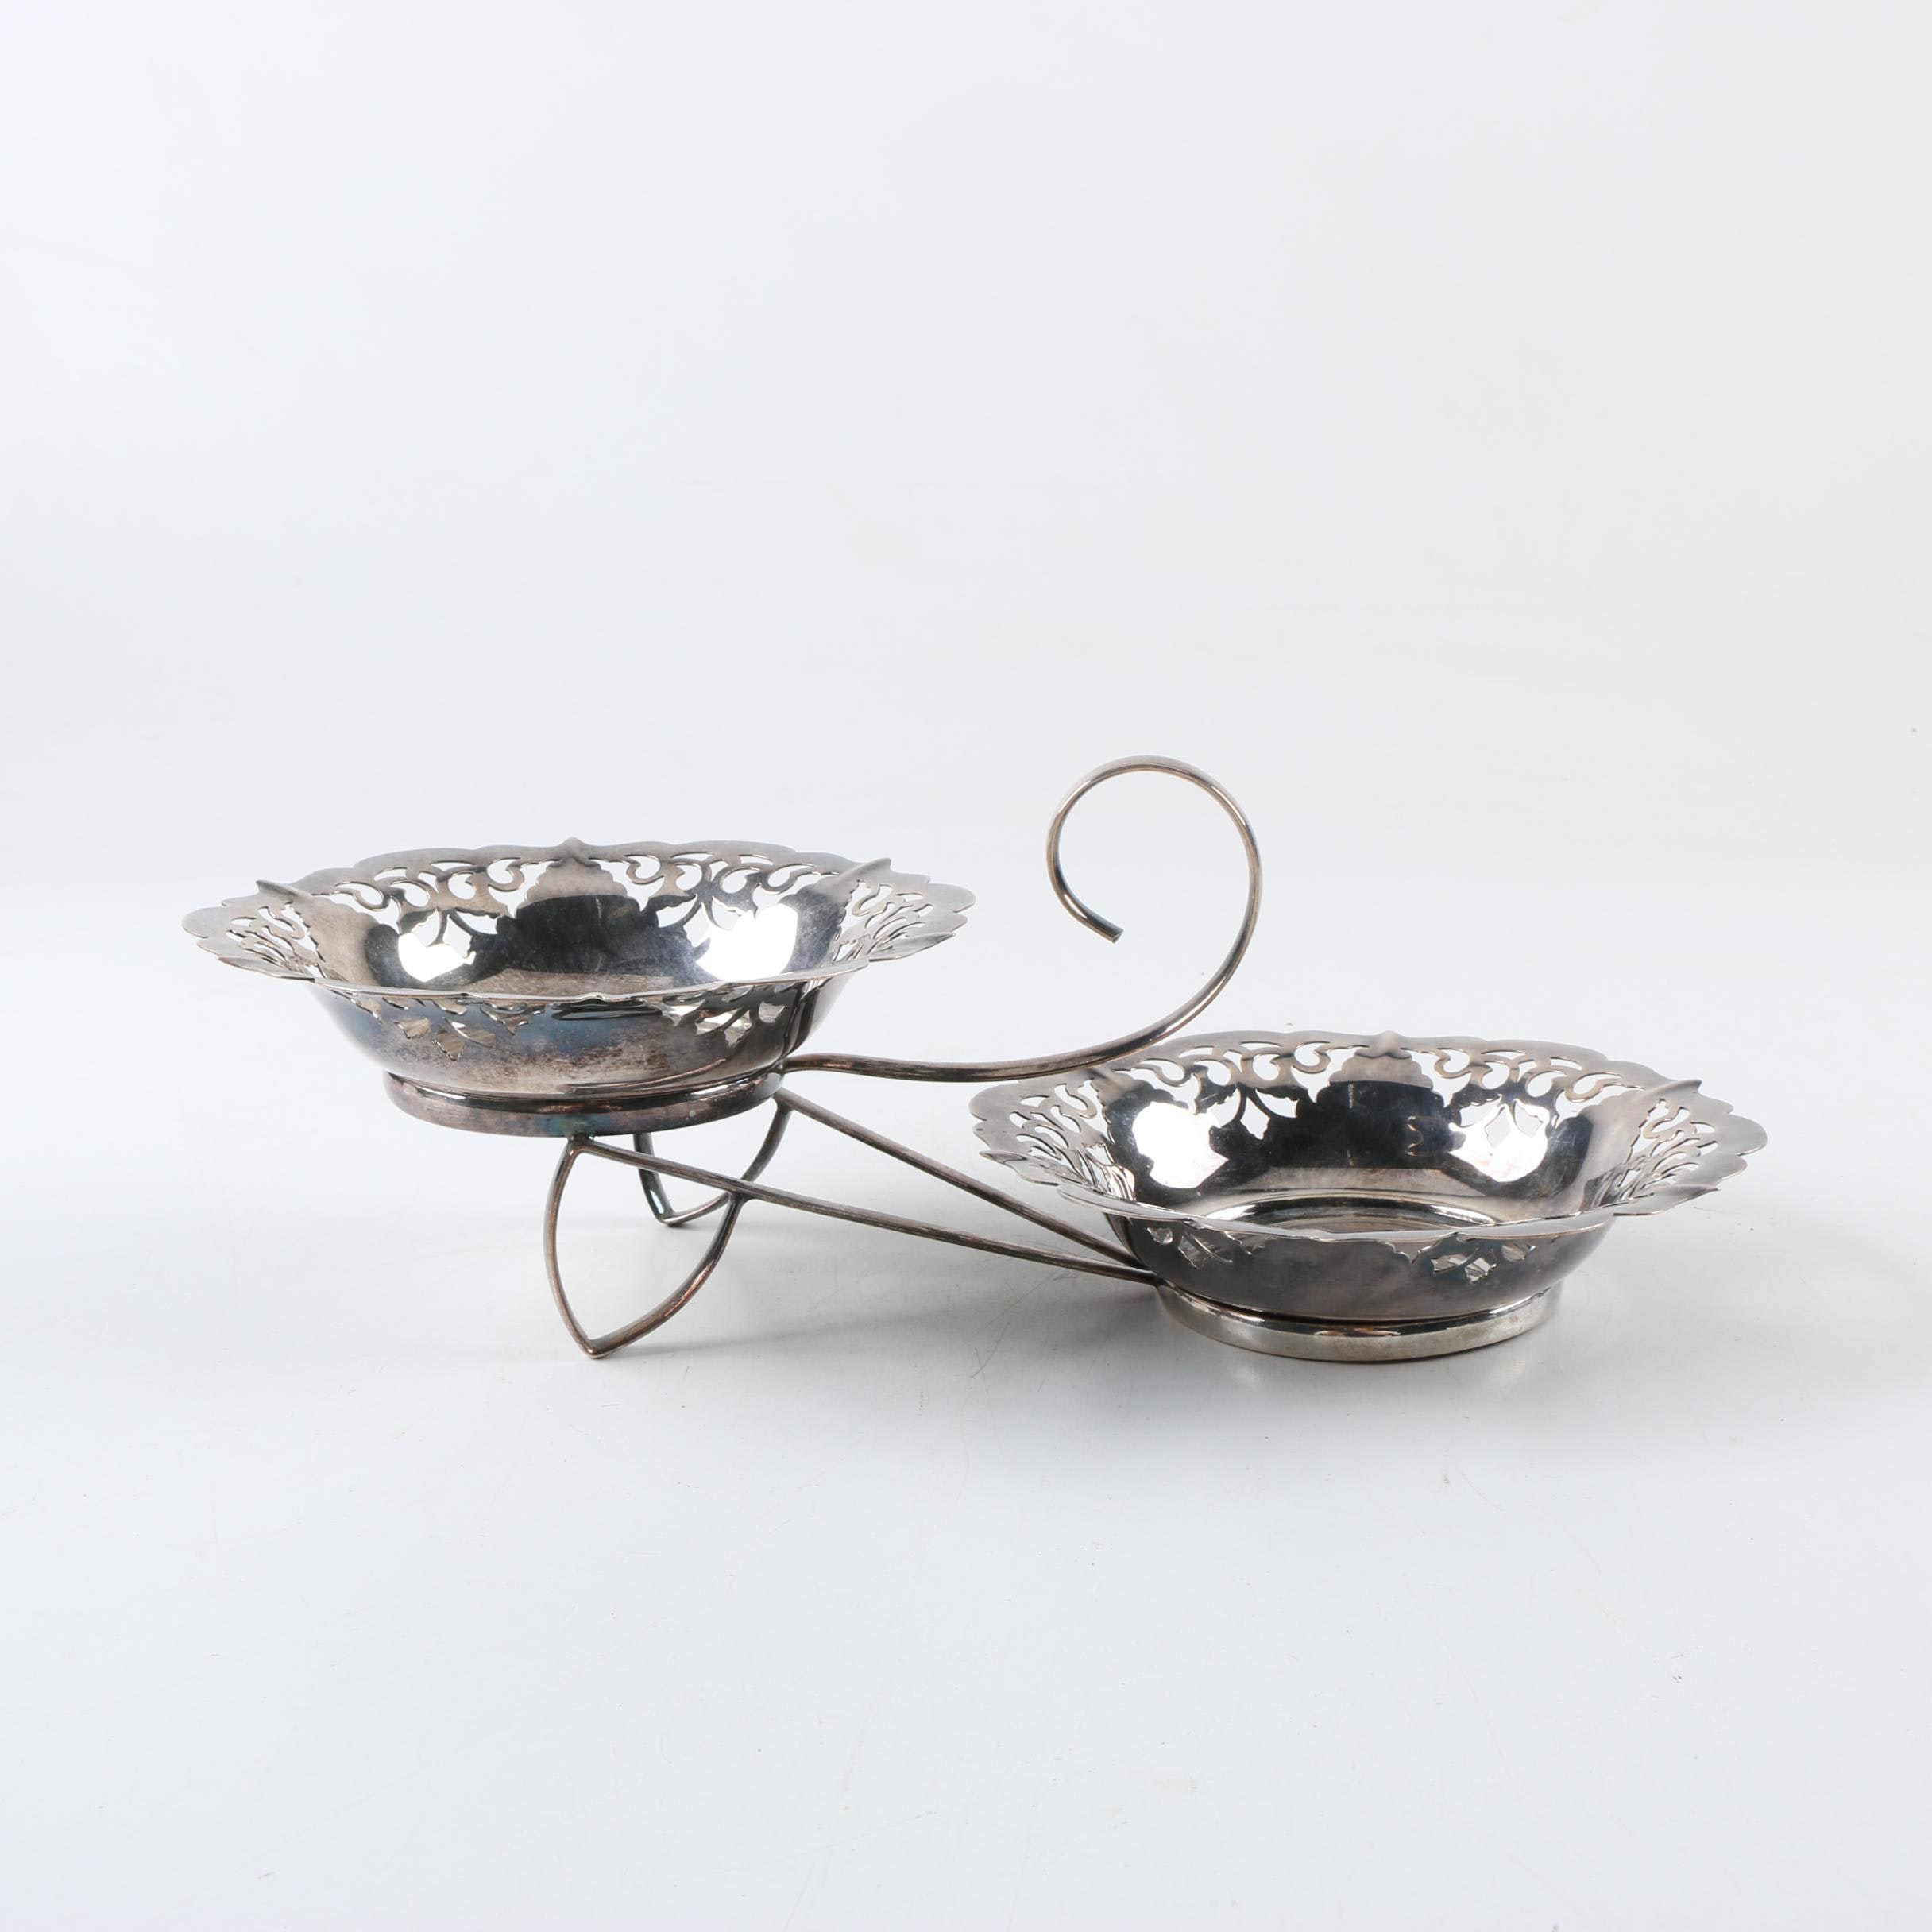 Silver Plate Bowls with Stand